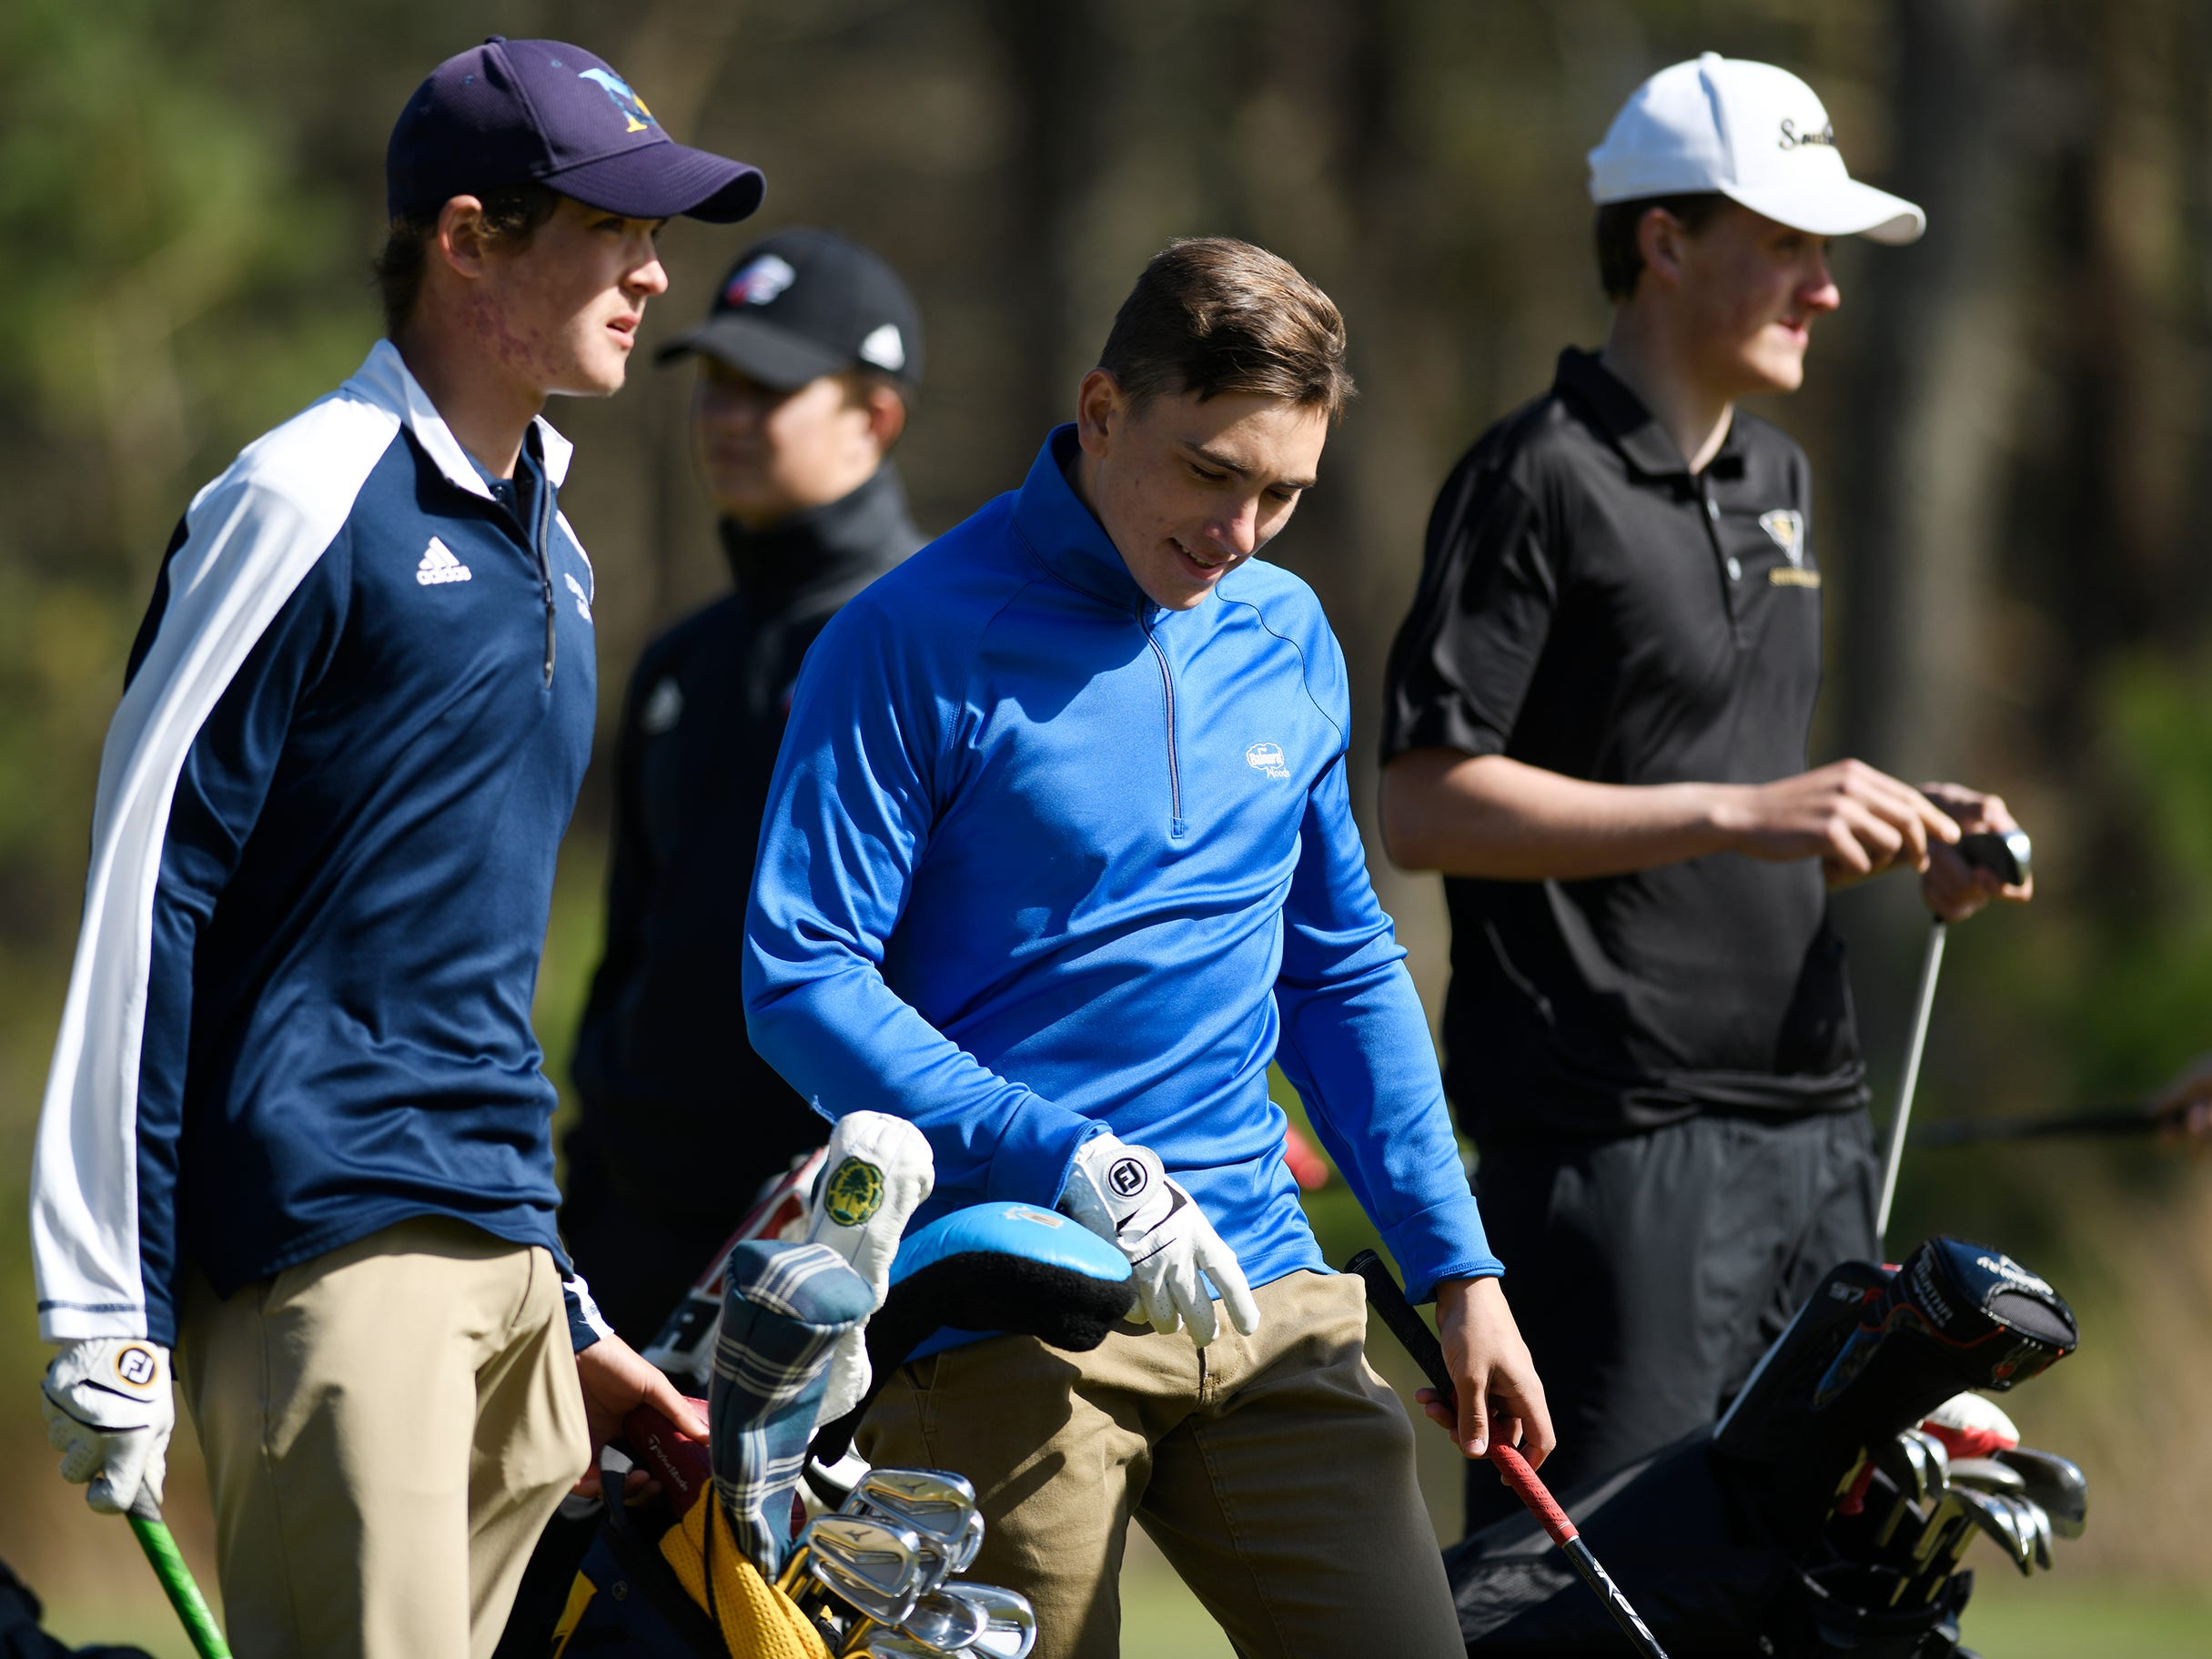 From left to right, Connor Bekefi of Tome River North, Evan Velasquez of Brick Memorial and Lasse Lehmann of Southern Regional compete during the Ocean County Tournament boys event at Sea Oaks Country Club in Little Egg Harbor on Monday, April 15, 2019.